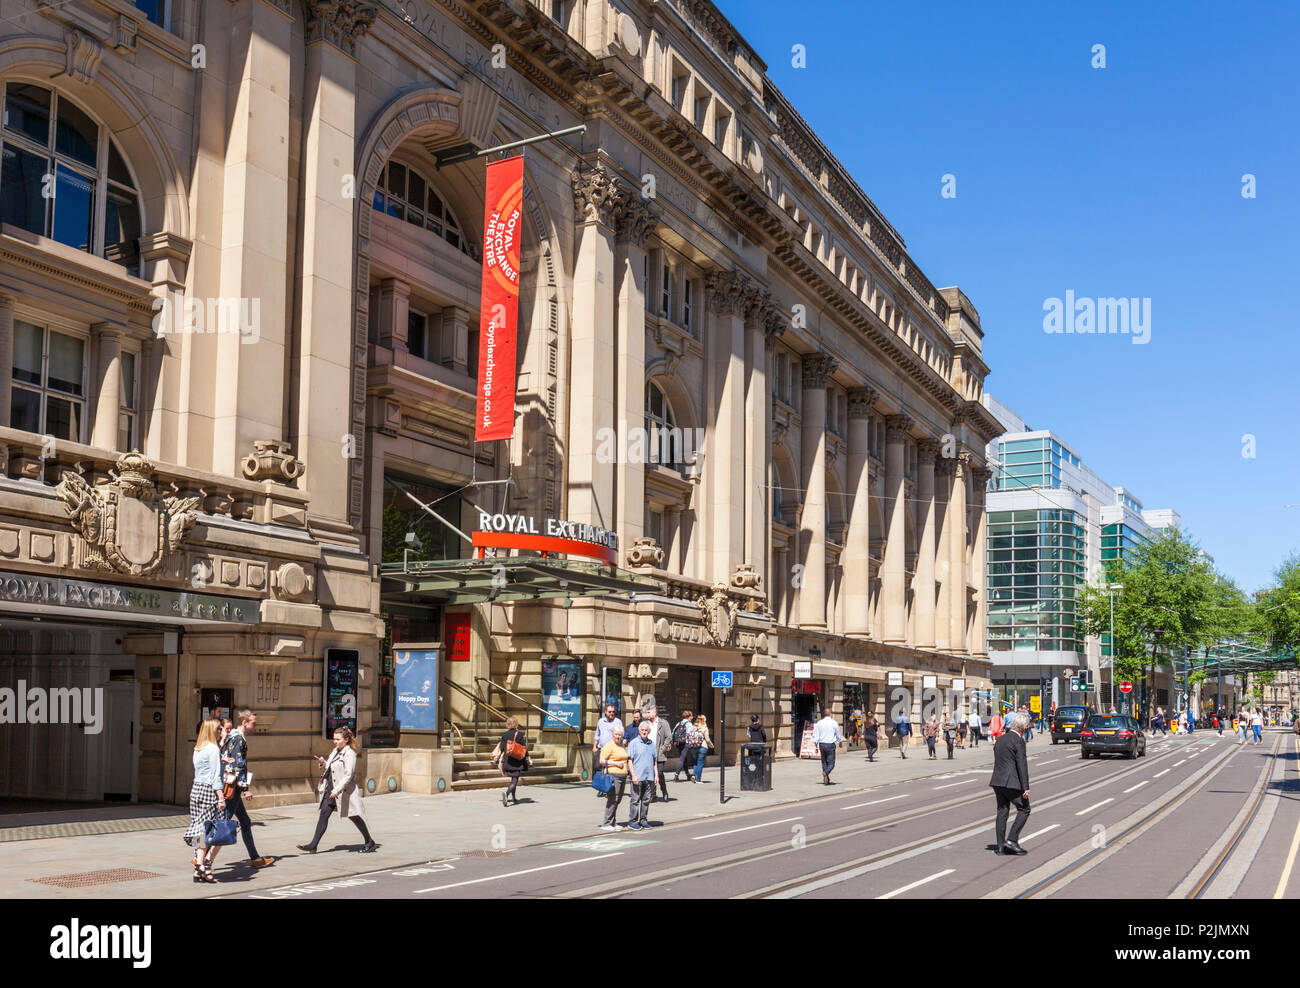 England Manchester England greater Manchester City centre Royal exchange theatre  and royal exchange arcade cross street manchester city centre  uk - Stock Image